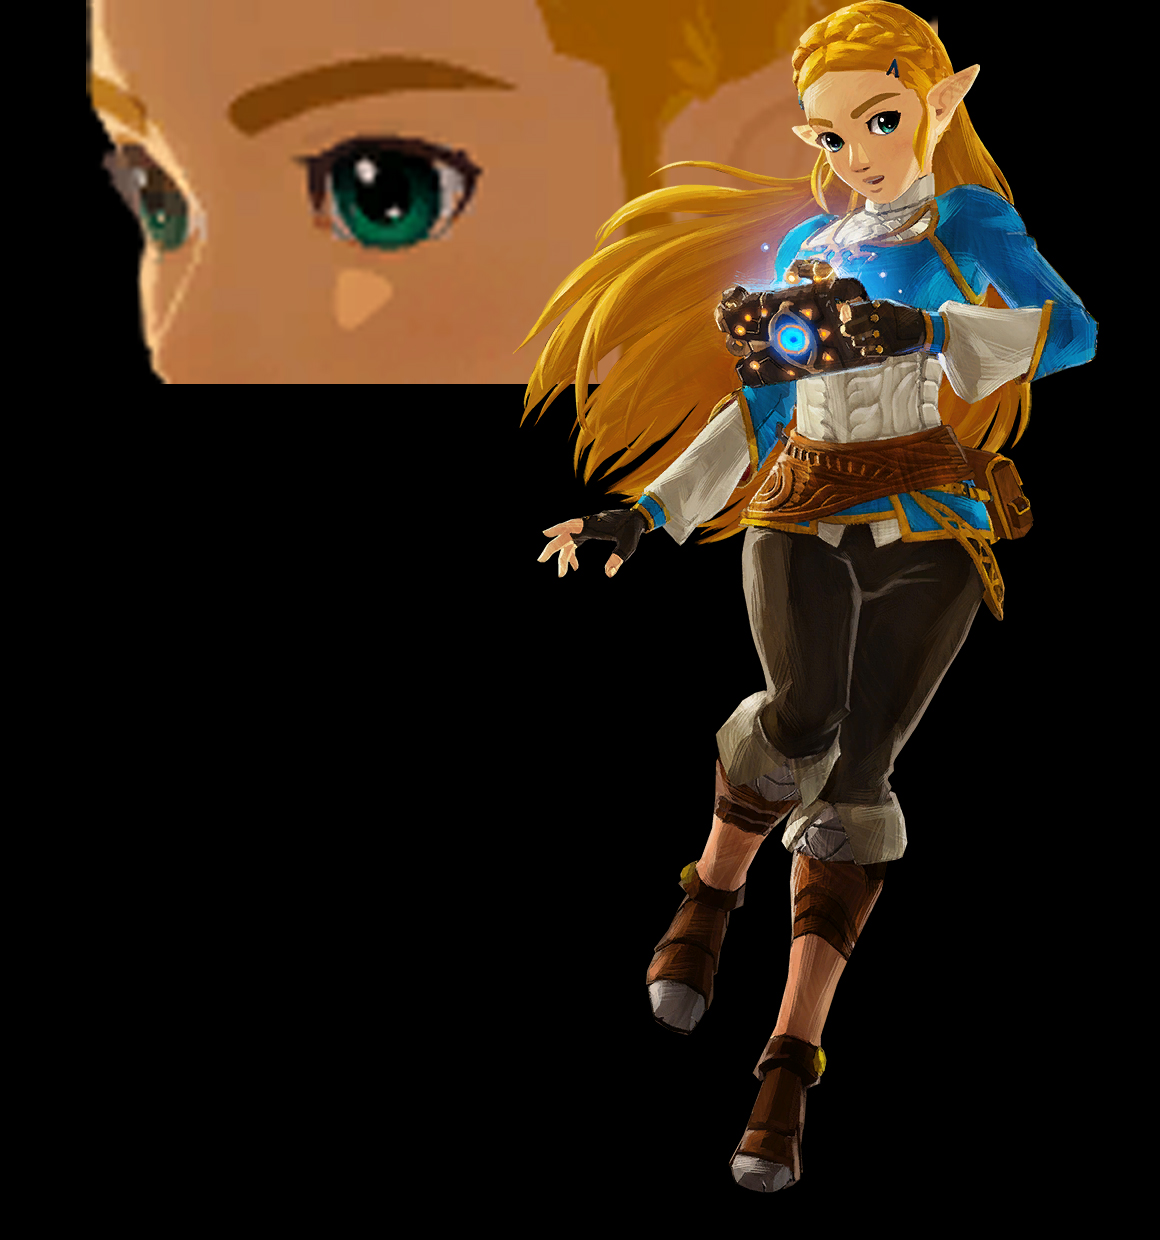 Hyrule Warriors: Age of Calamity — Zelda